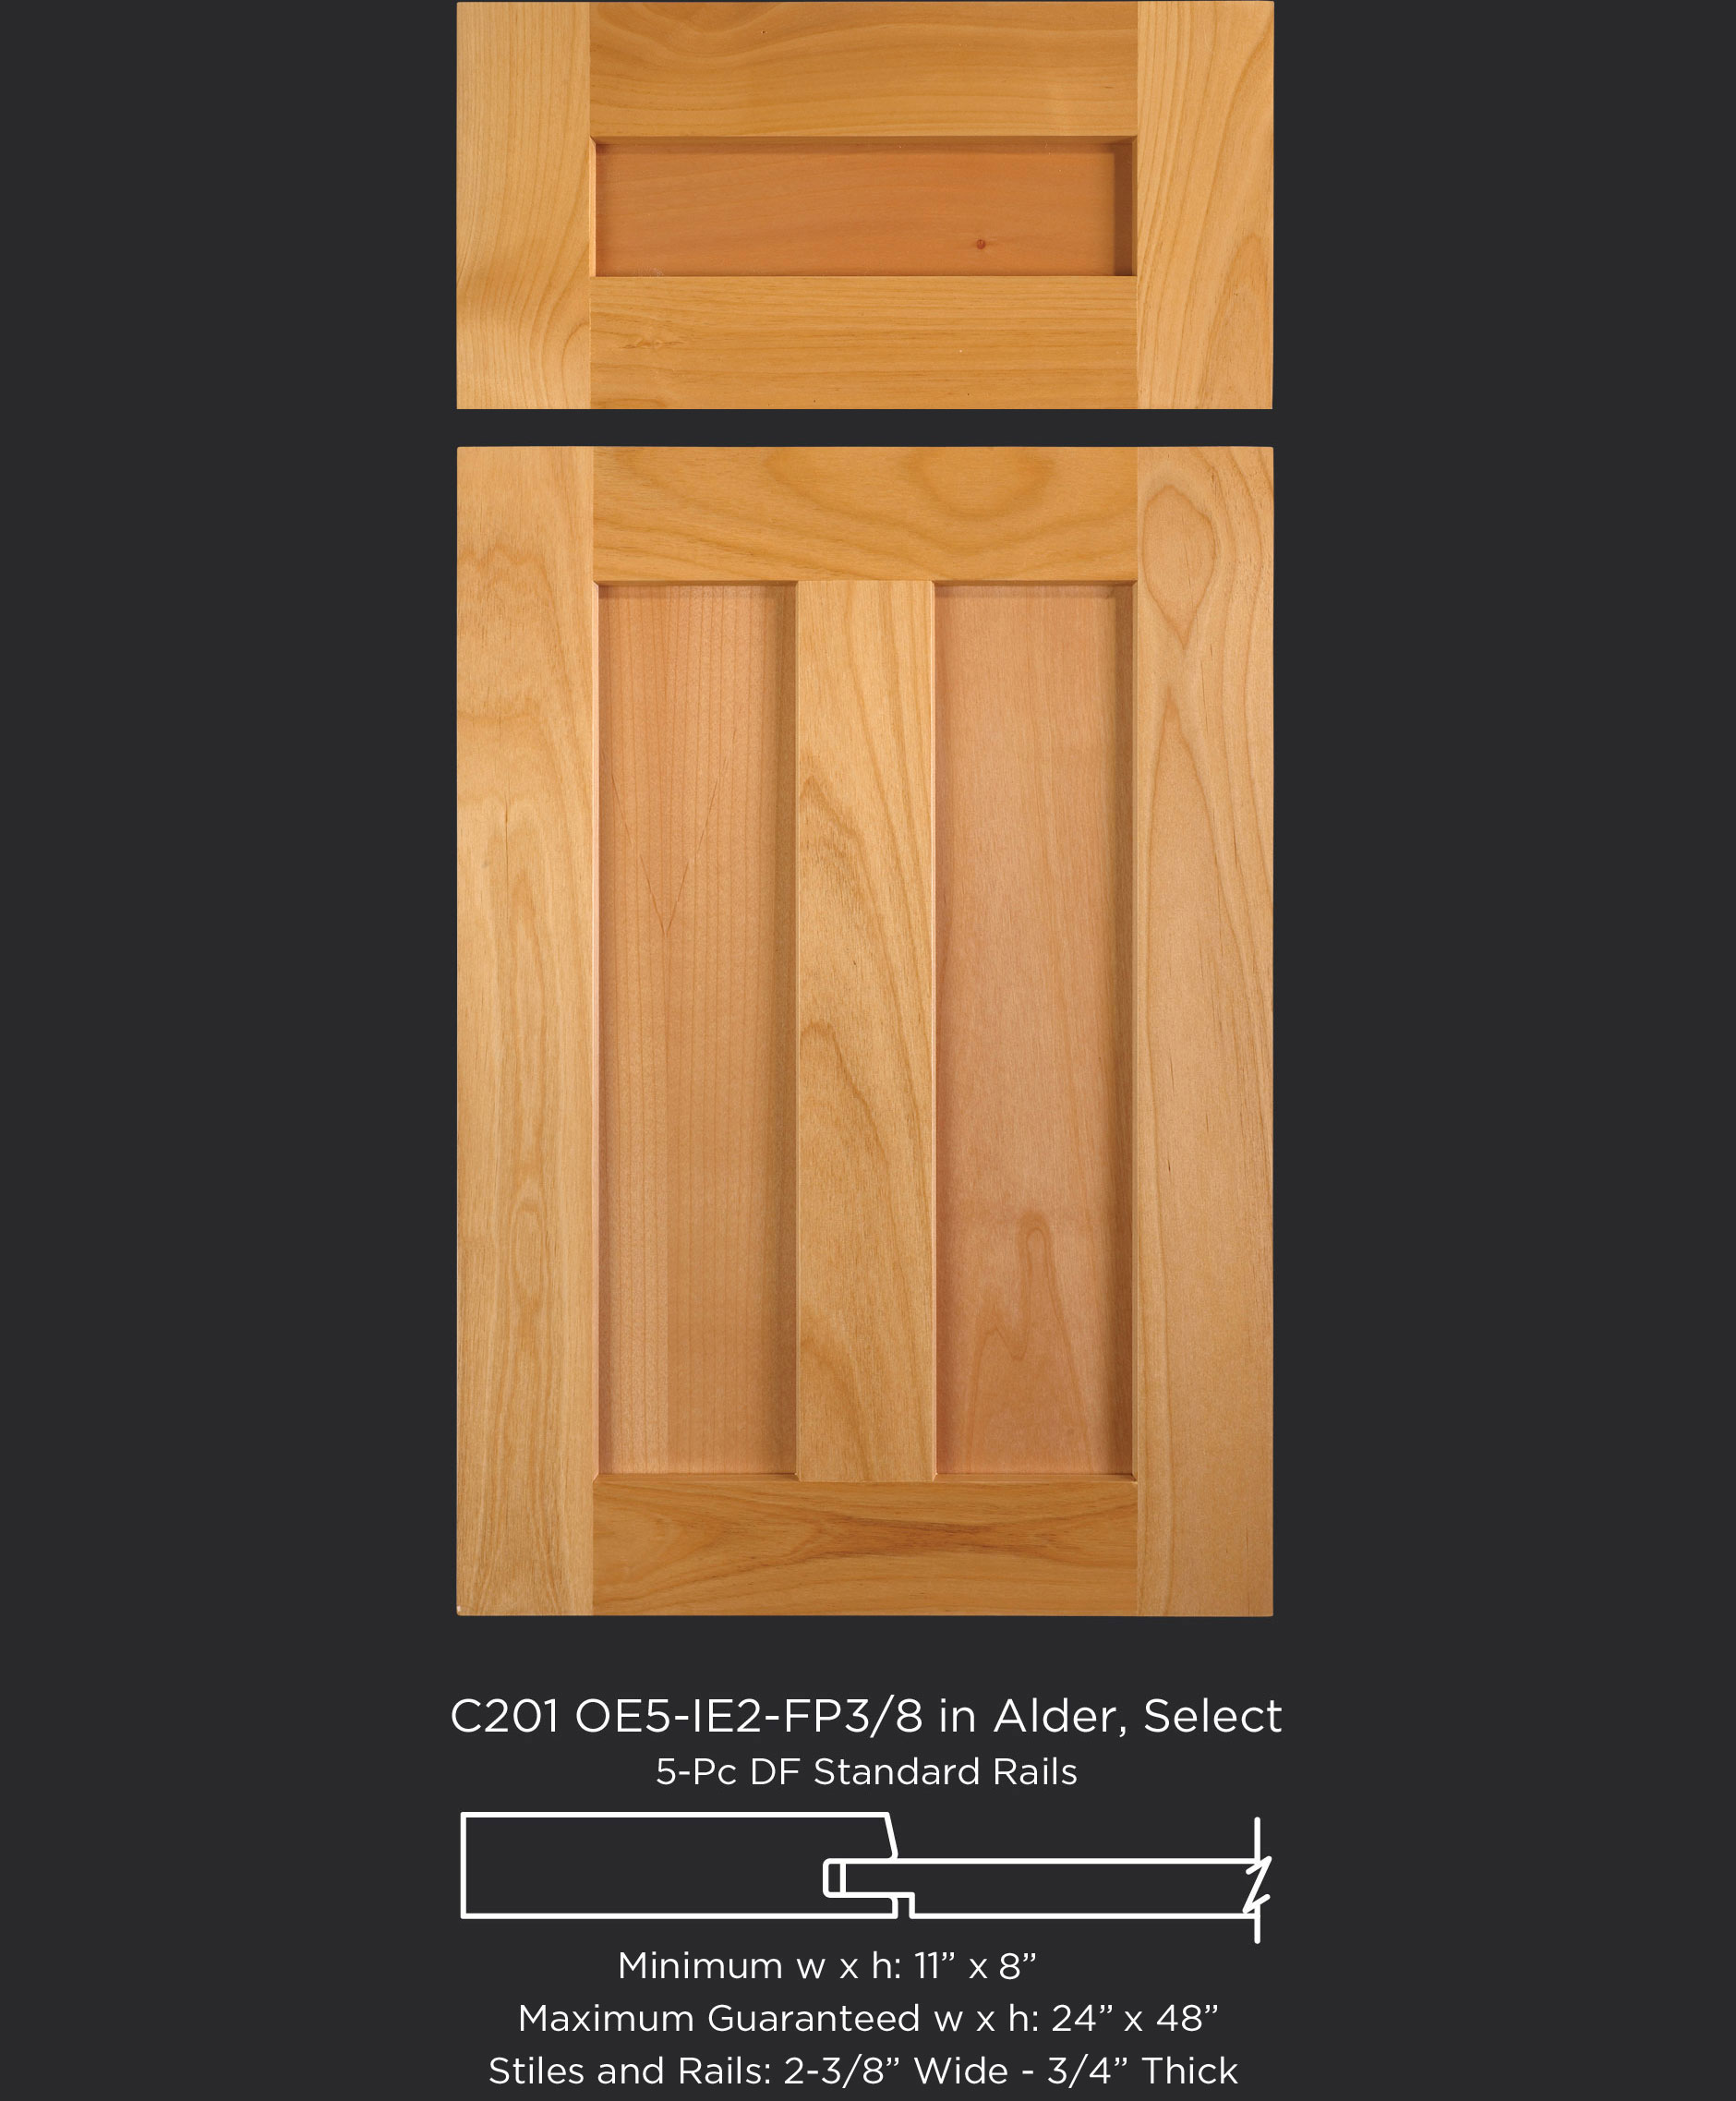 Cope and Stick Cabinet Door C201 OE5-IE2-FP3/8 in Alder, Select and 5 piece drawer front